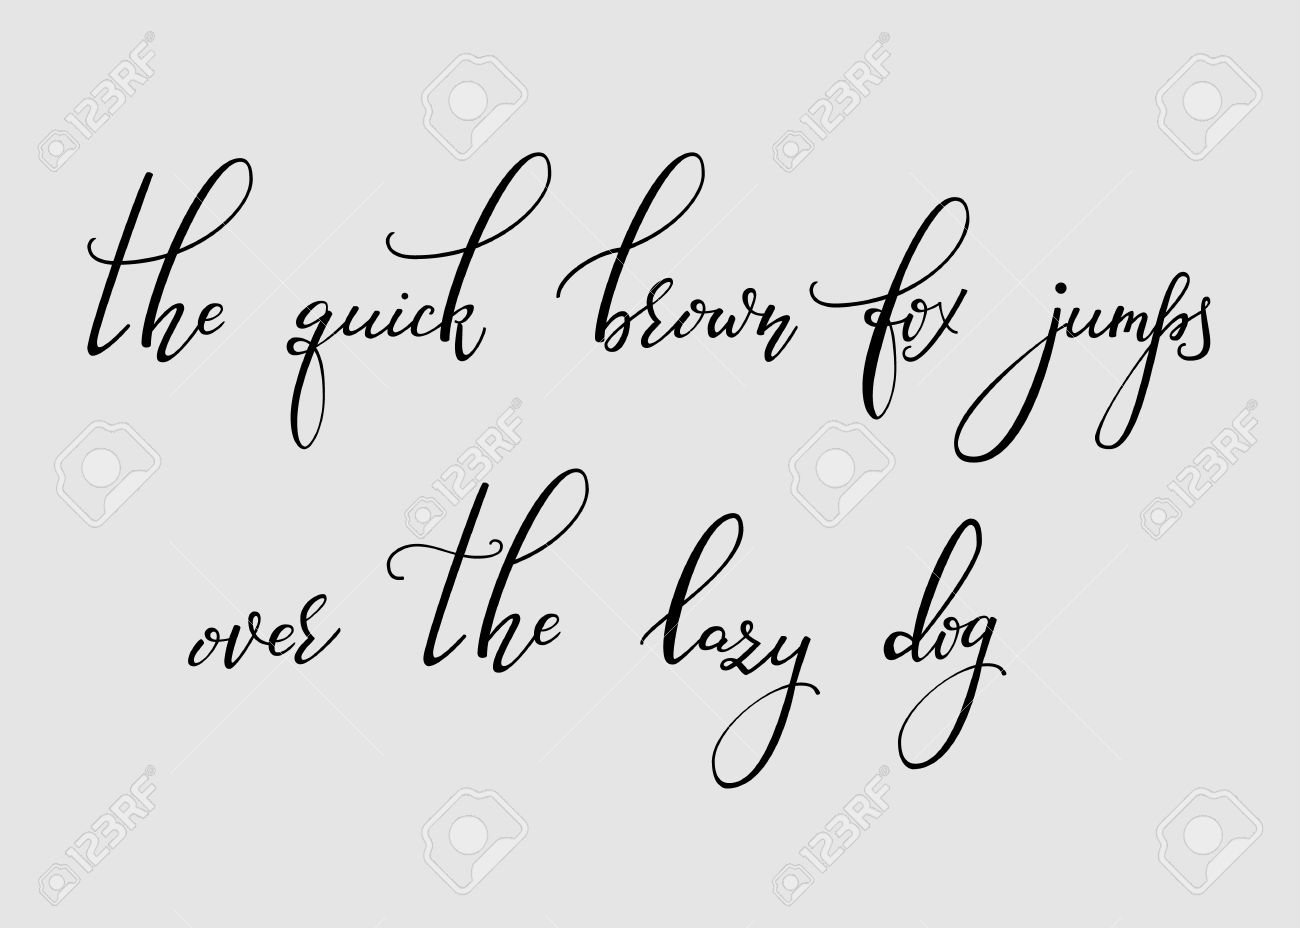 handwritten pointed pen ink style modern calligraphy cursive